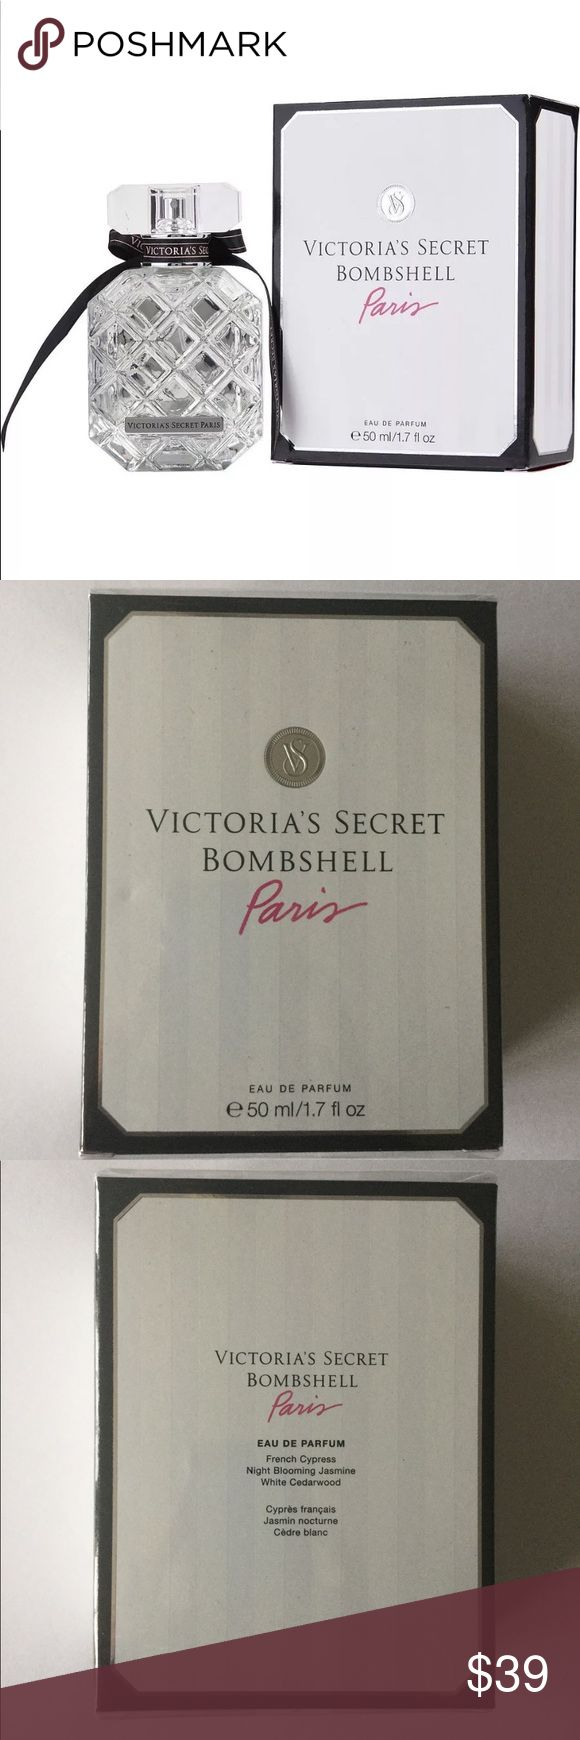 $39❤️New In Box VS Bombshell Paris Eau de Parfum ❤️This is a must have for all you Victoria's Secret fans!   Sexy in the City of Light. Crisp and fresh, this fragrance captures the scent of Parisian gardens in wintertime. * Fragrance type: Fresh * Notes: French cypress, night blooming jasmine, white cedarwood * 50 ml/1.7 fl. oz * Domestic * Retail Price $55 Victoria's Secret Other